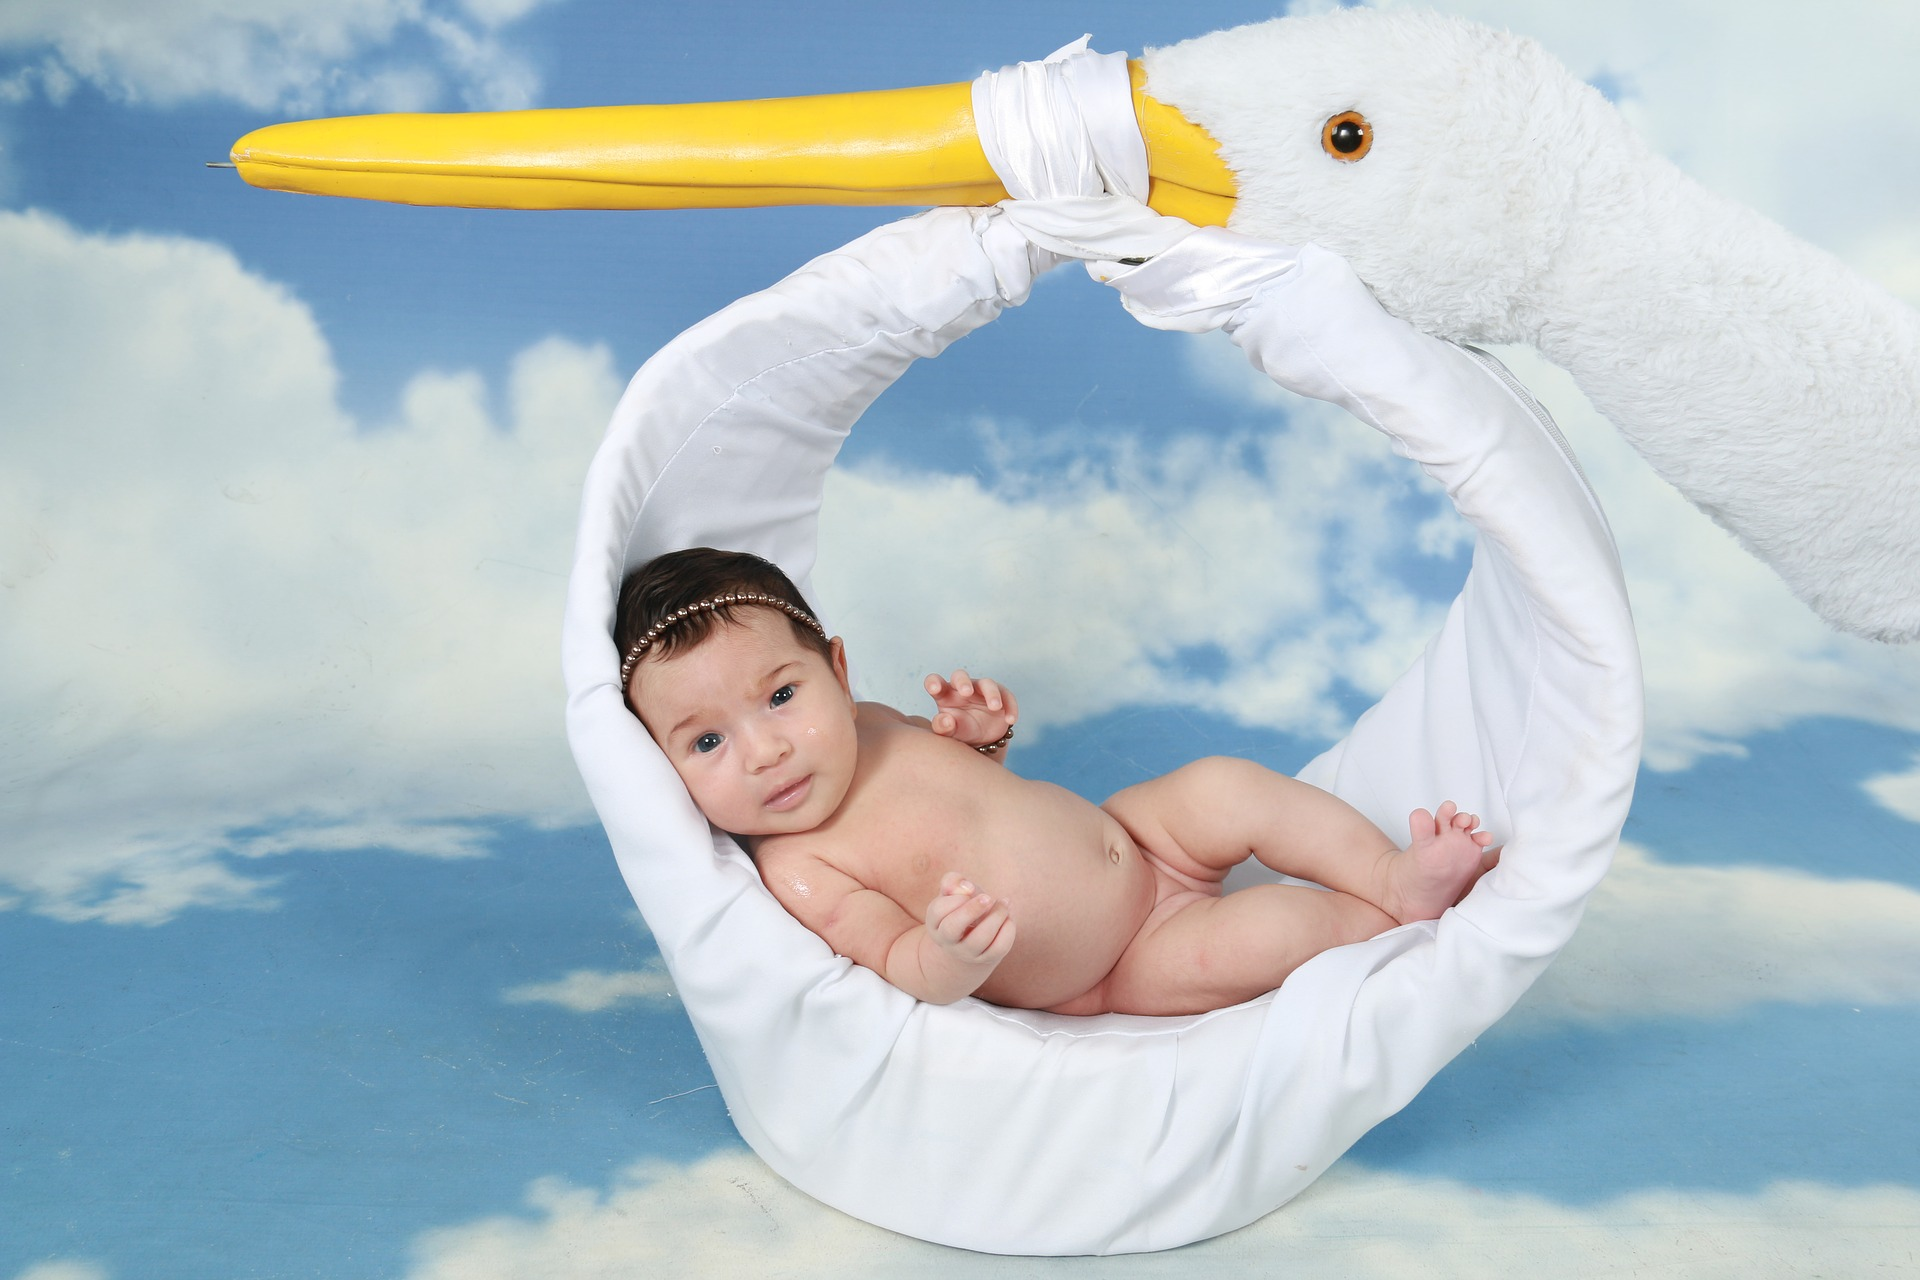 Baby being delivered by a stuffed stork